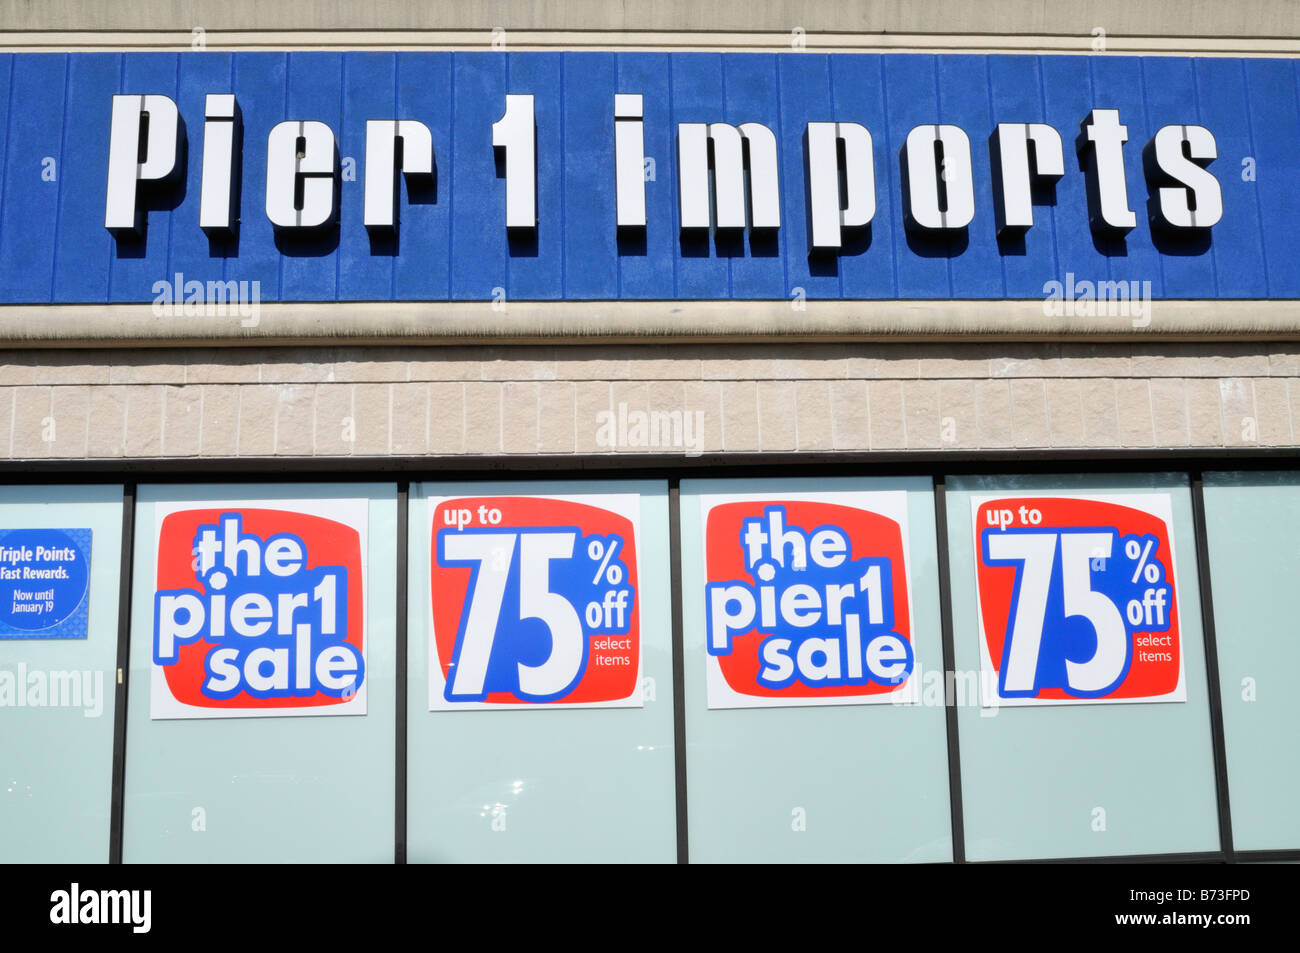 Store sales clearance signs in windows of Pier1 Imports retail store in Hyannis, Massachusetts, USA - Stock Image